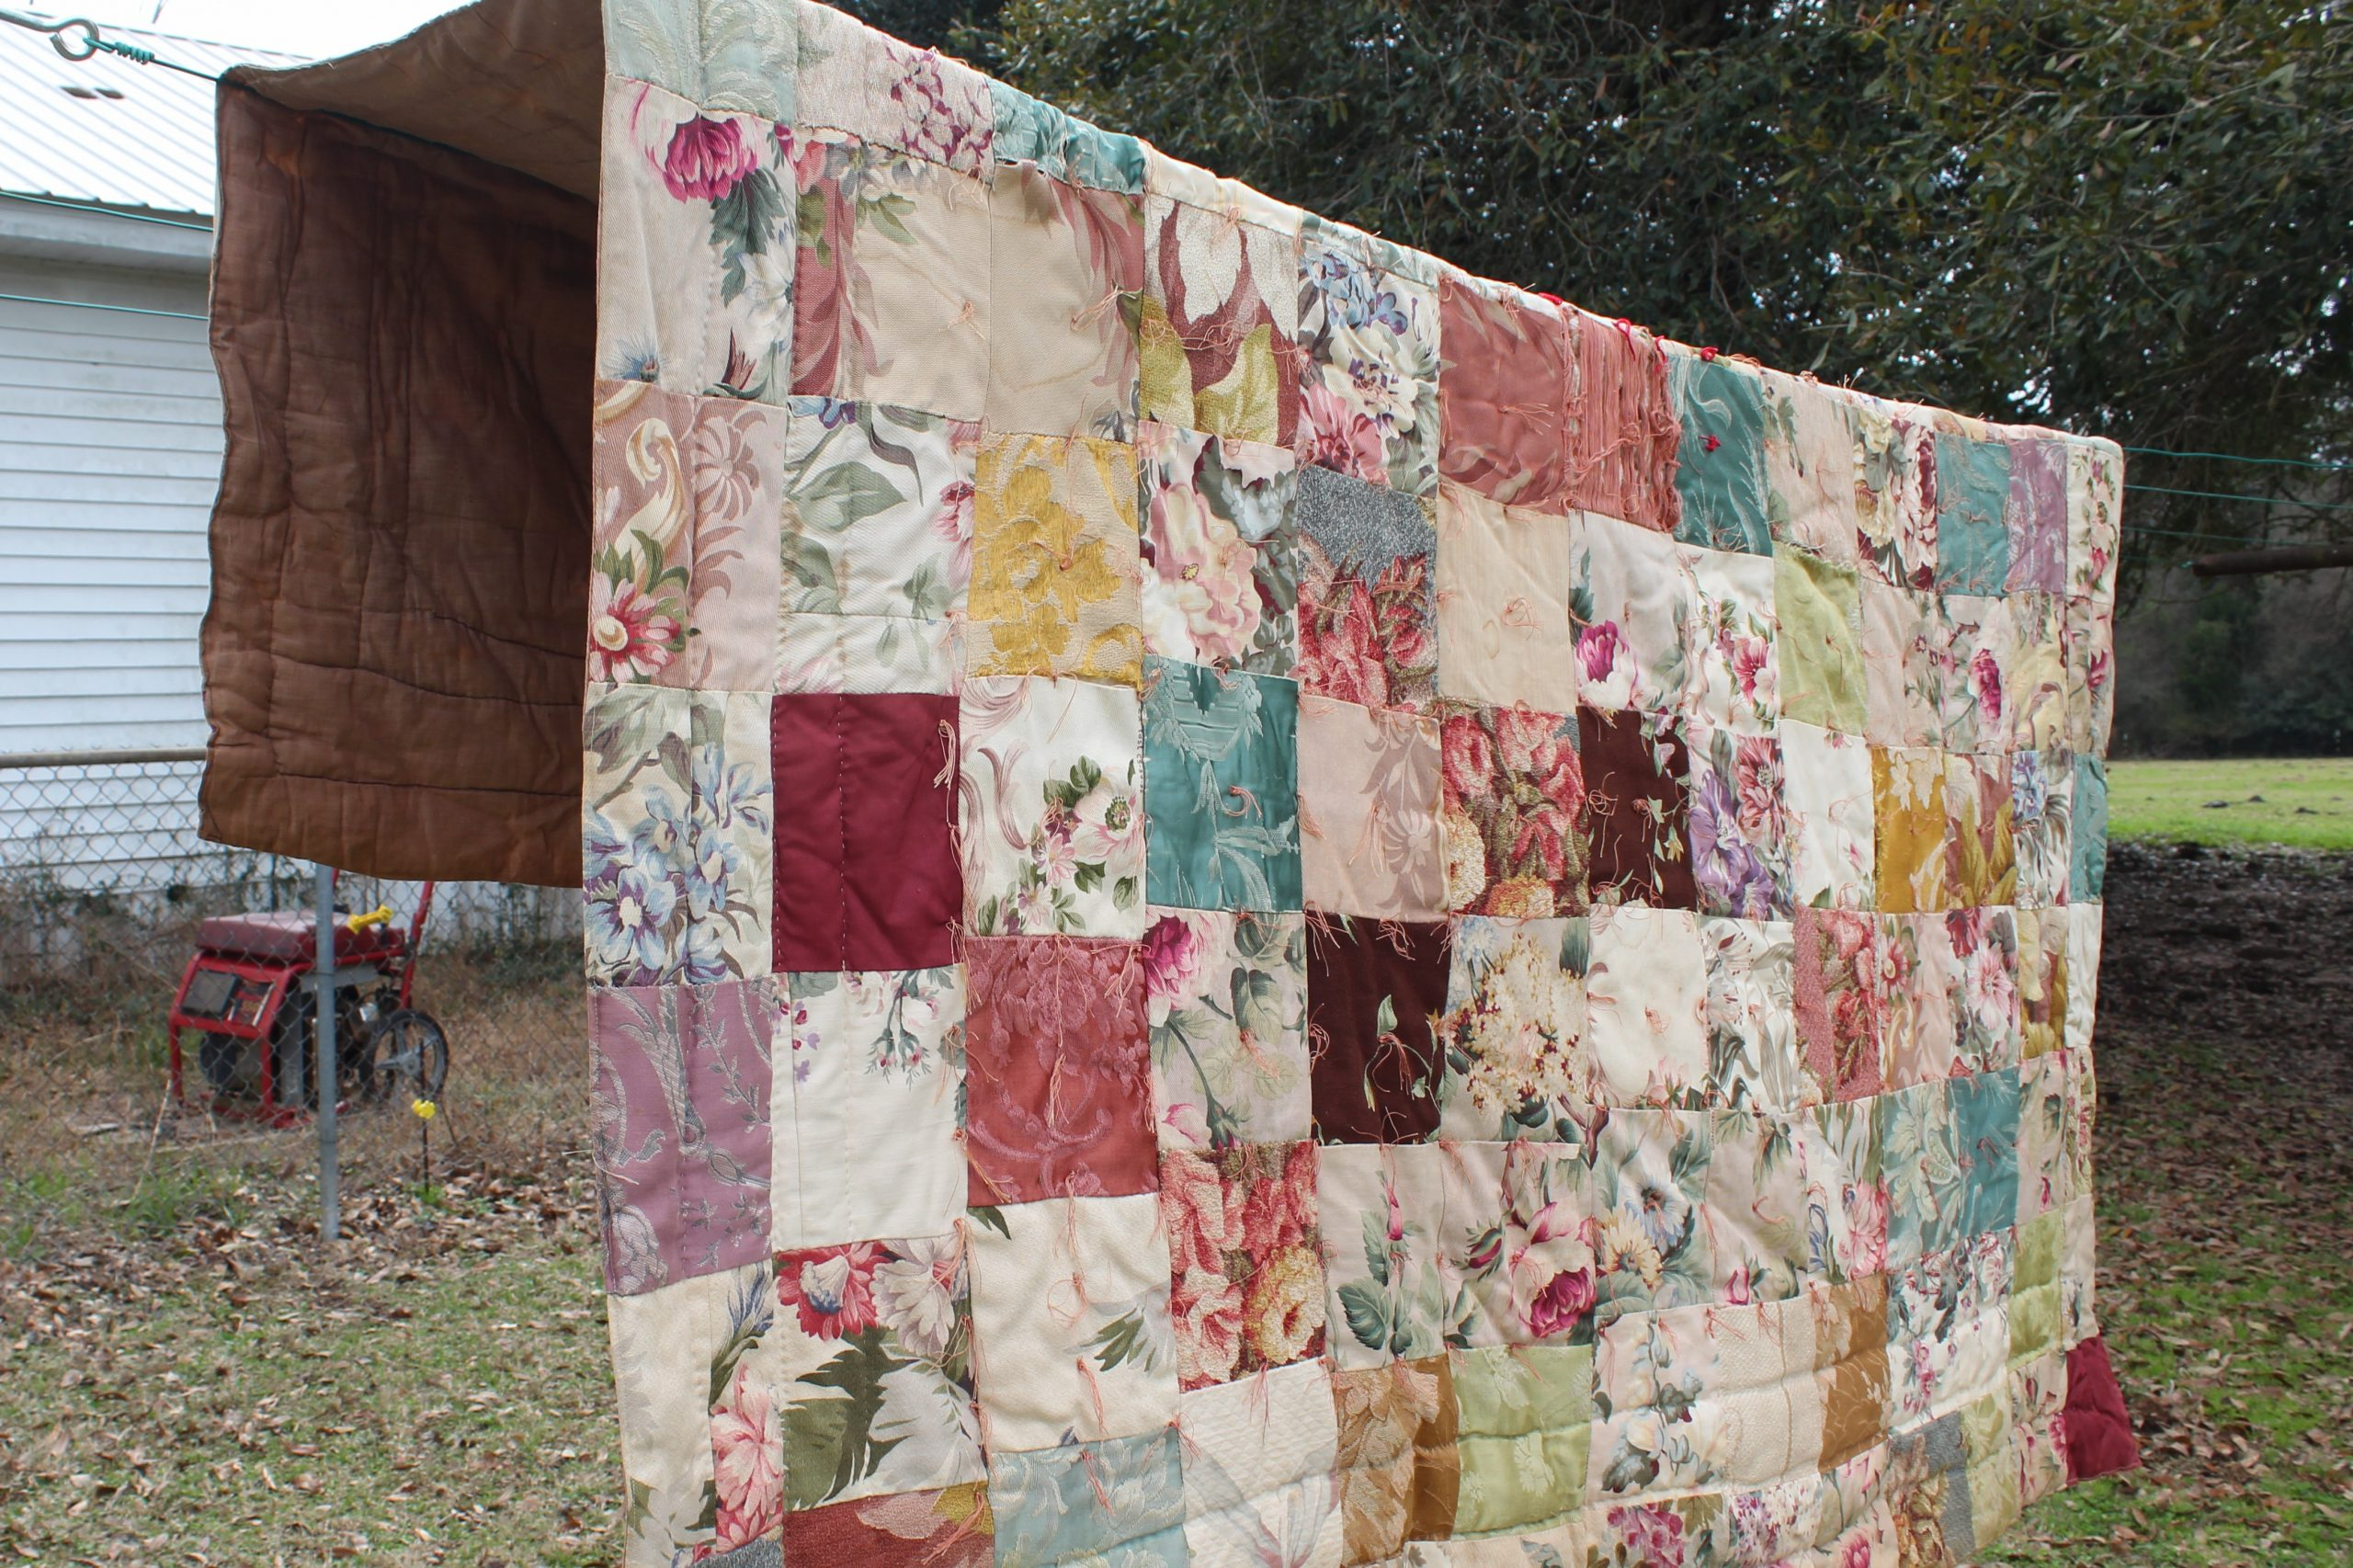 Quilt hanging on clothesline